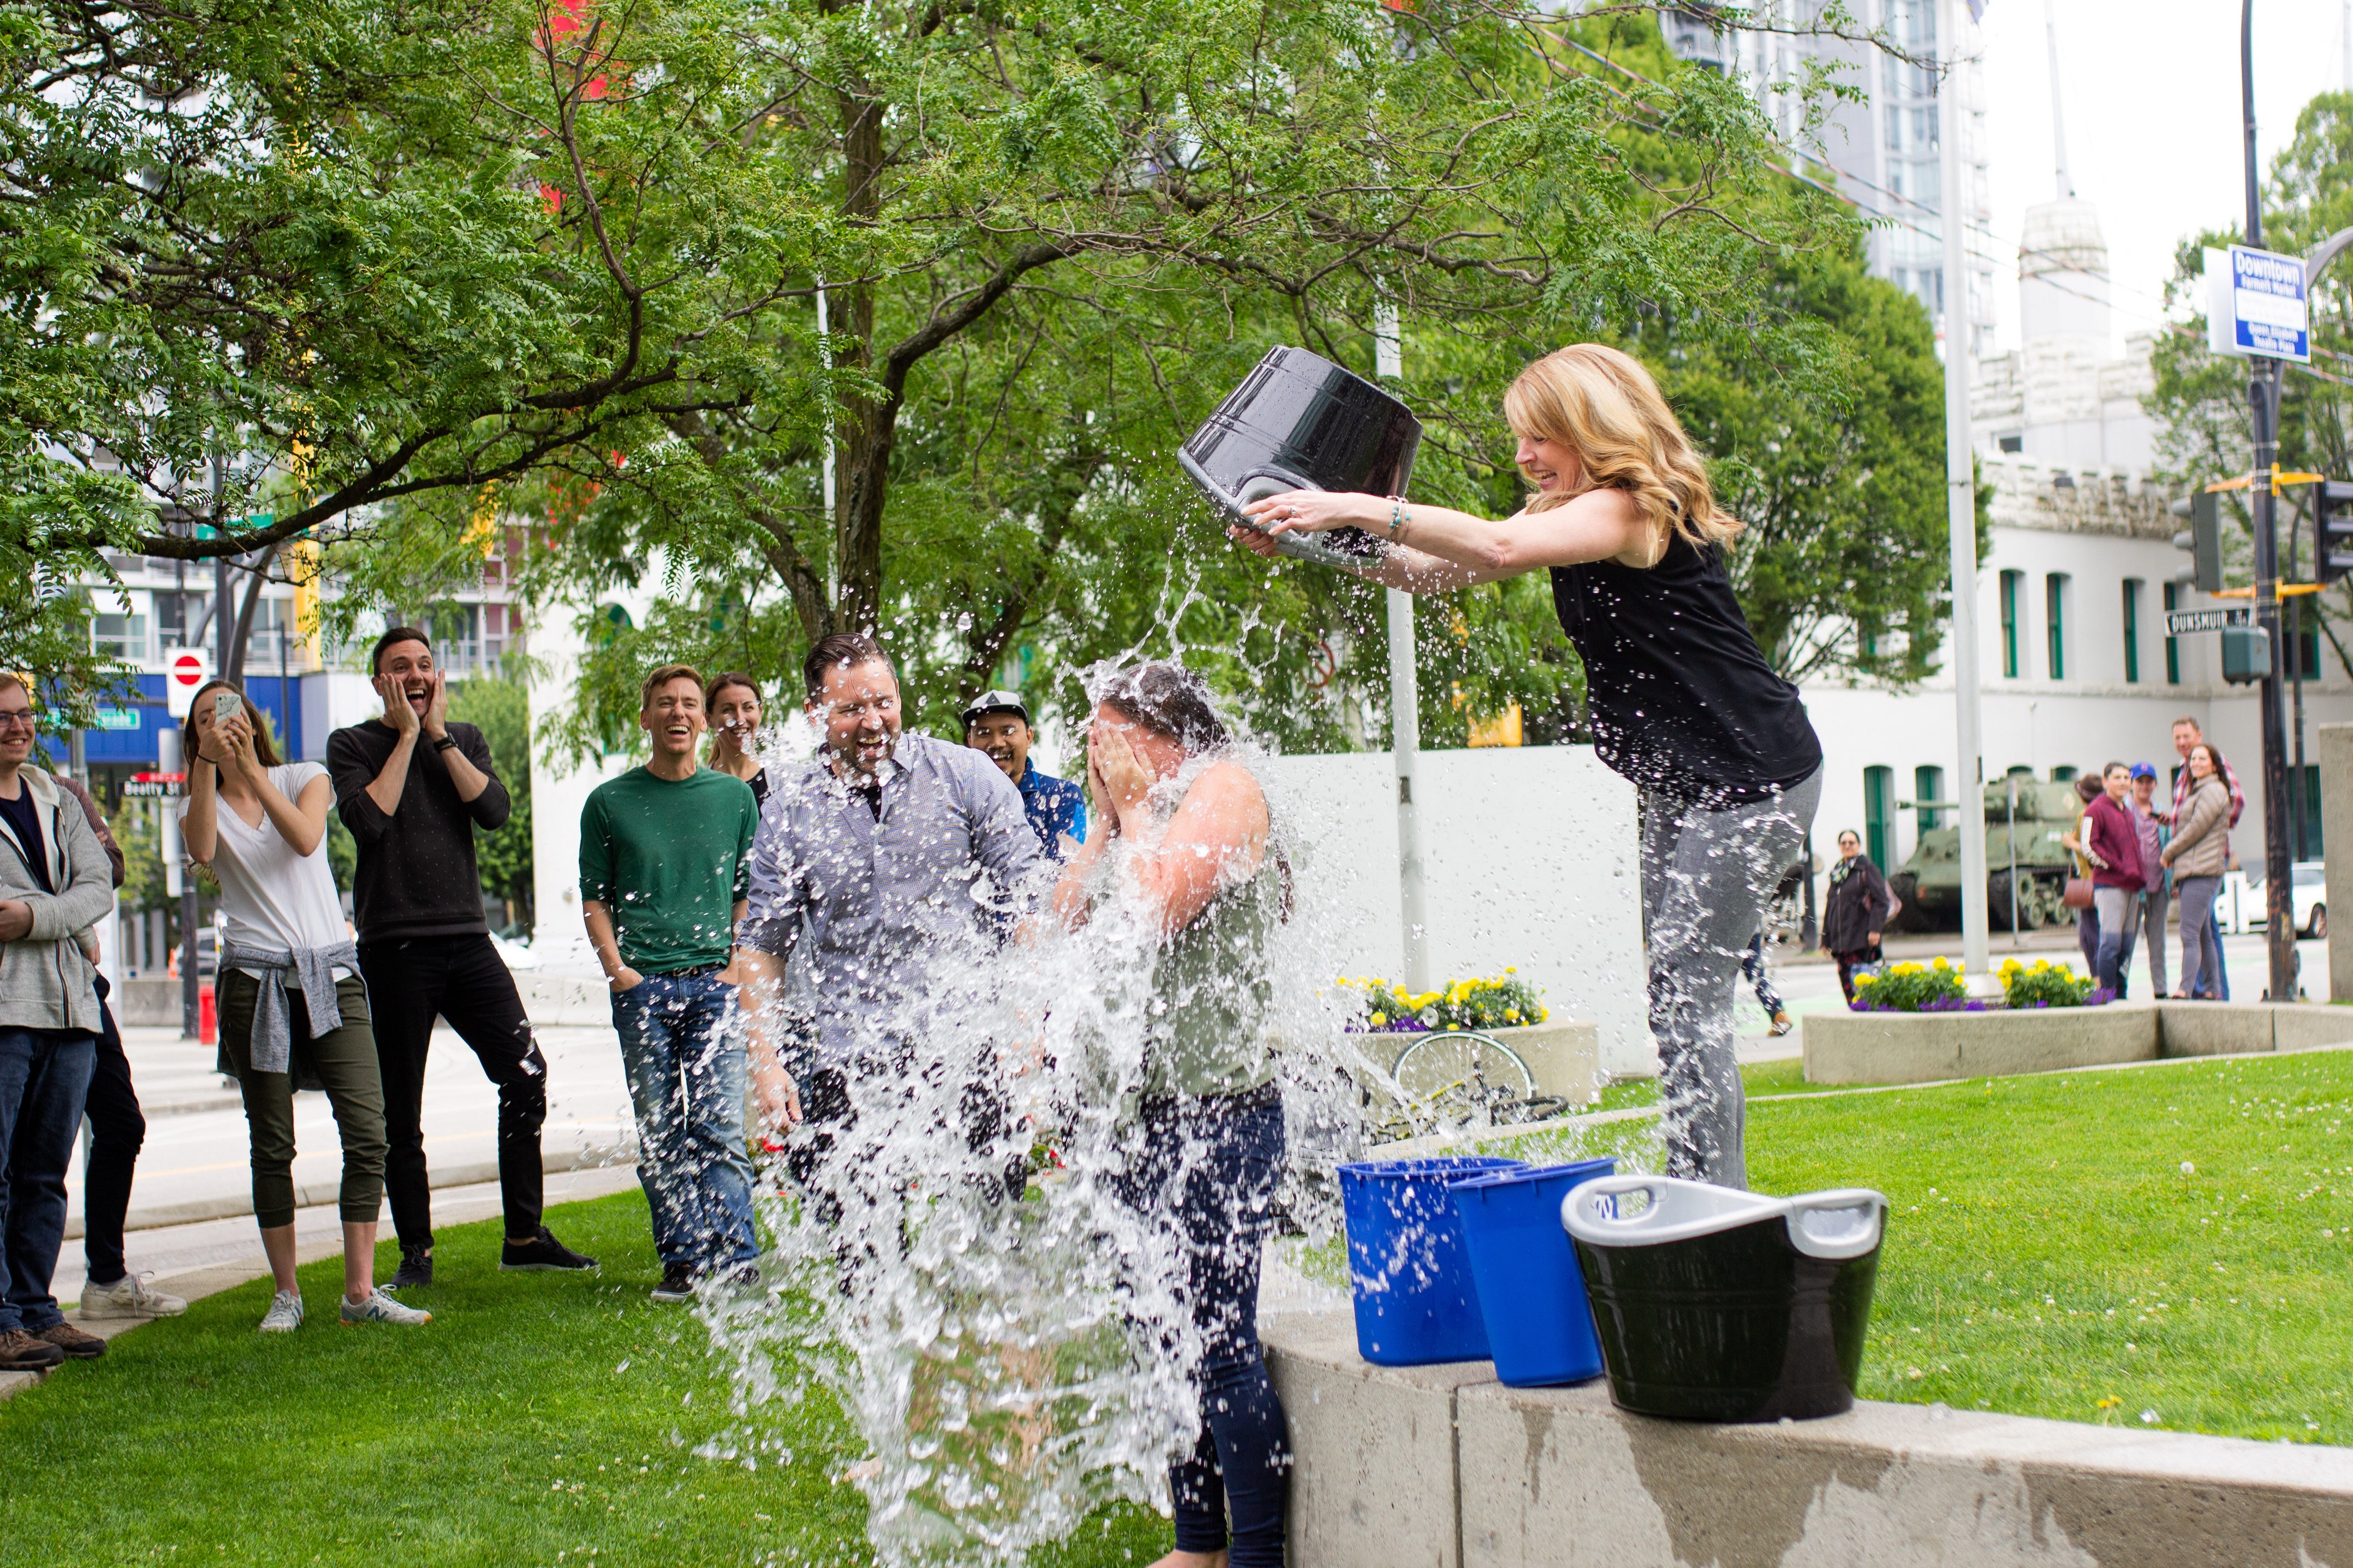 Someone getting a bucket of ice water dumped on their head to raise $$ for ALS research in a park with onlookers